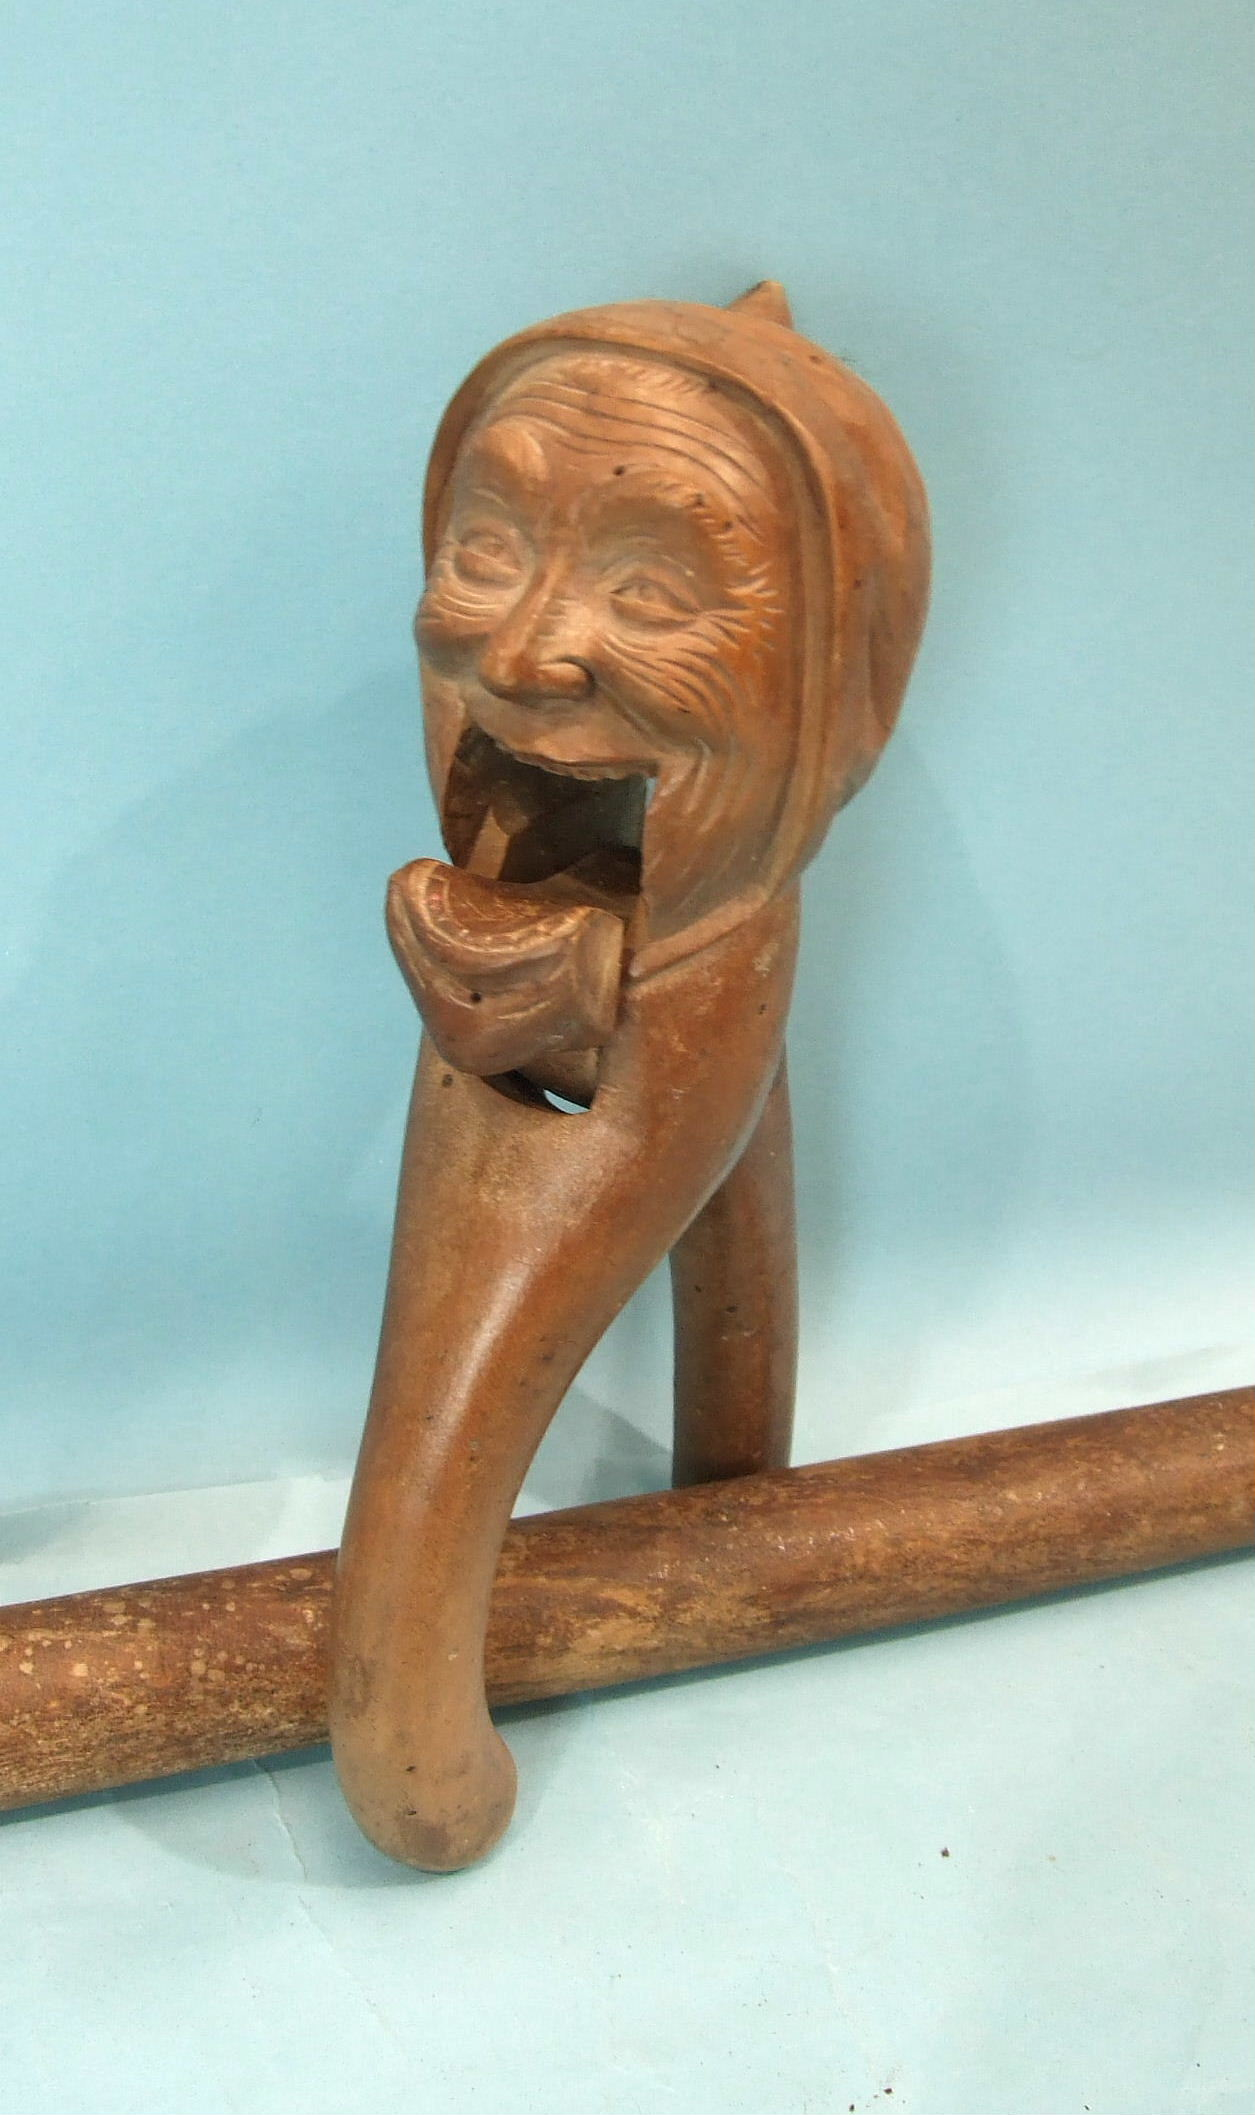 Lot 128 - A 19th century Continental carved wood nut cracker in the form of a woman wearing a night cap, a